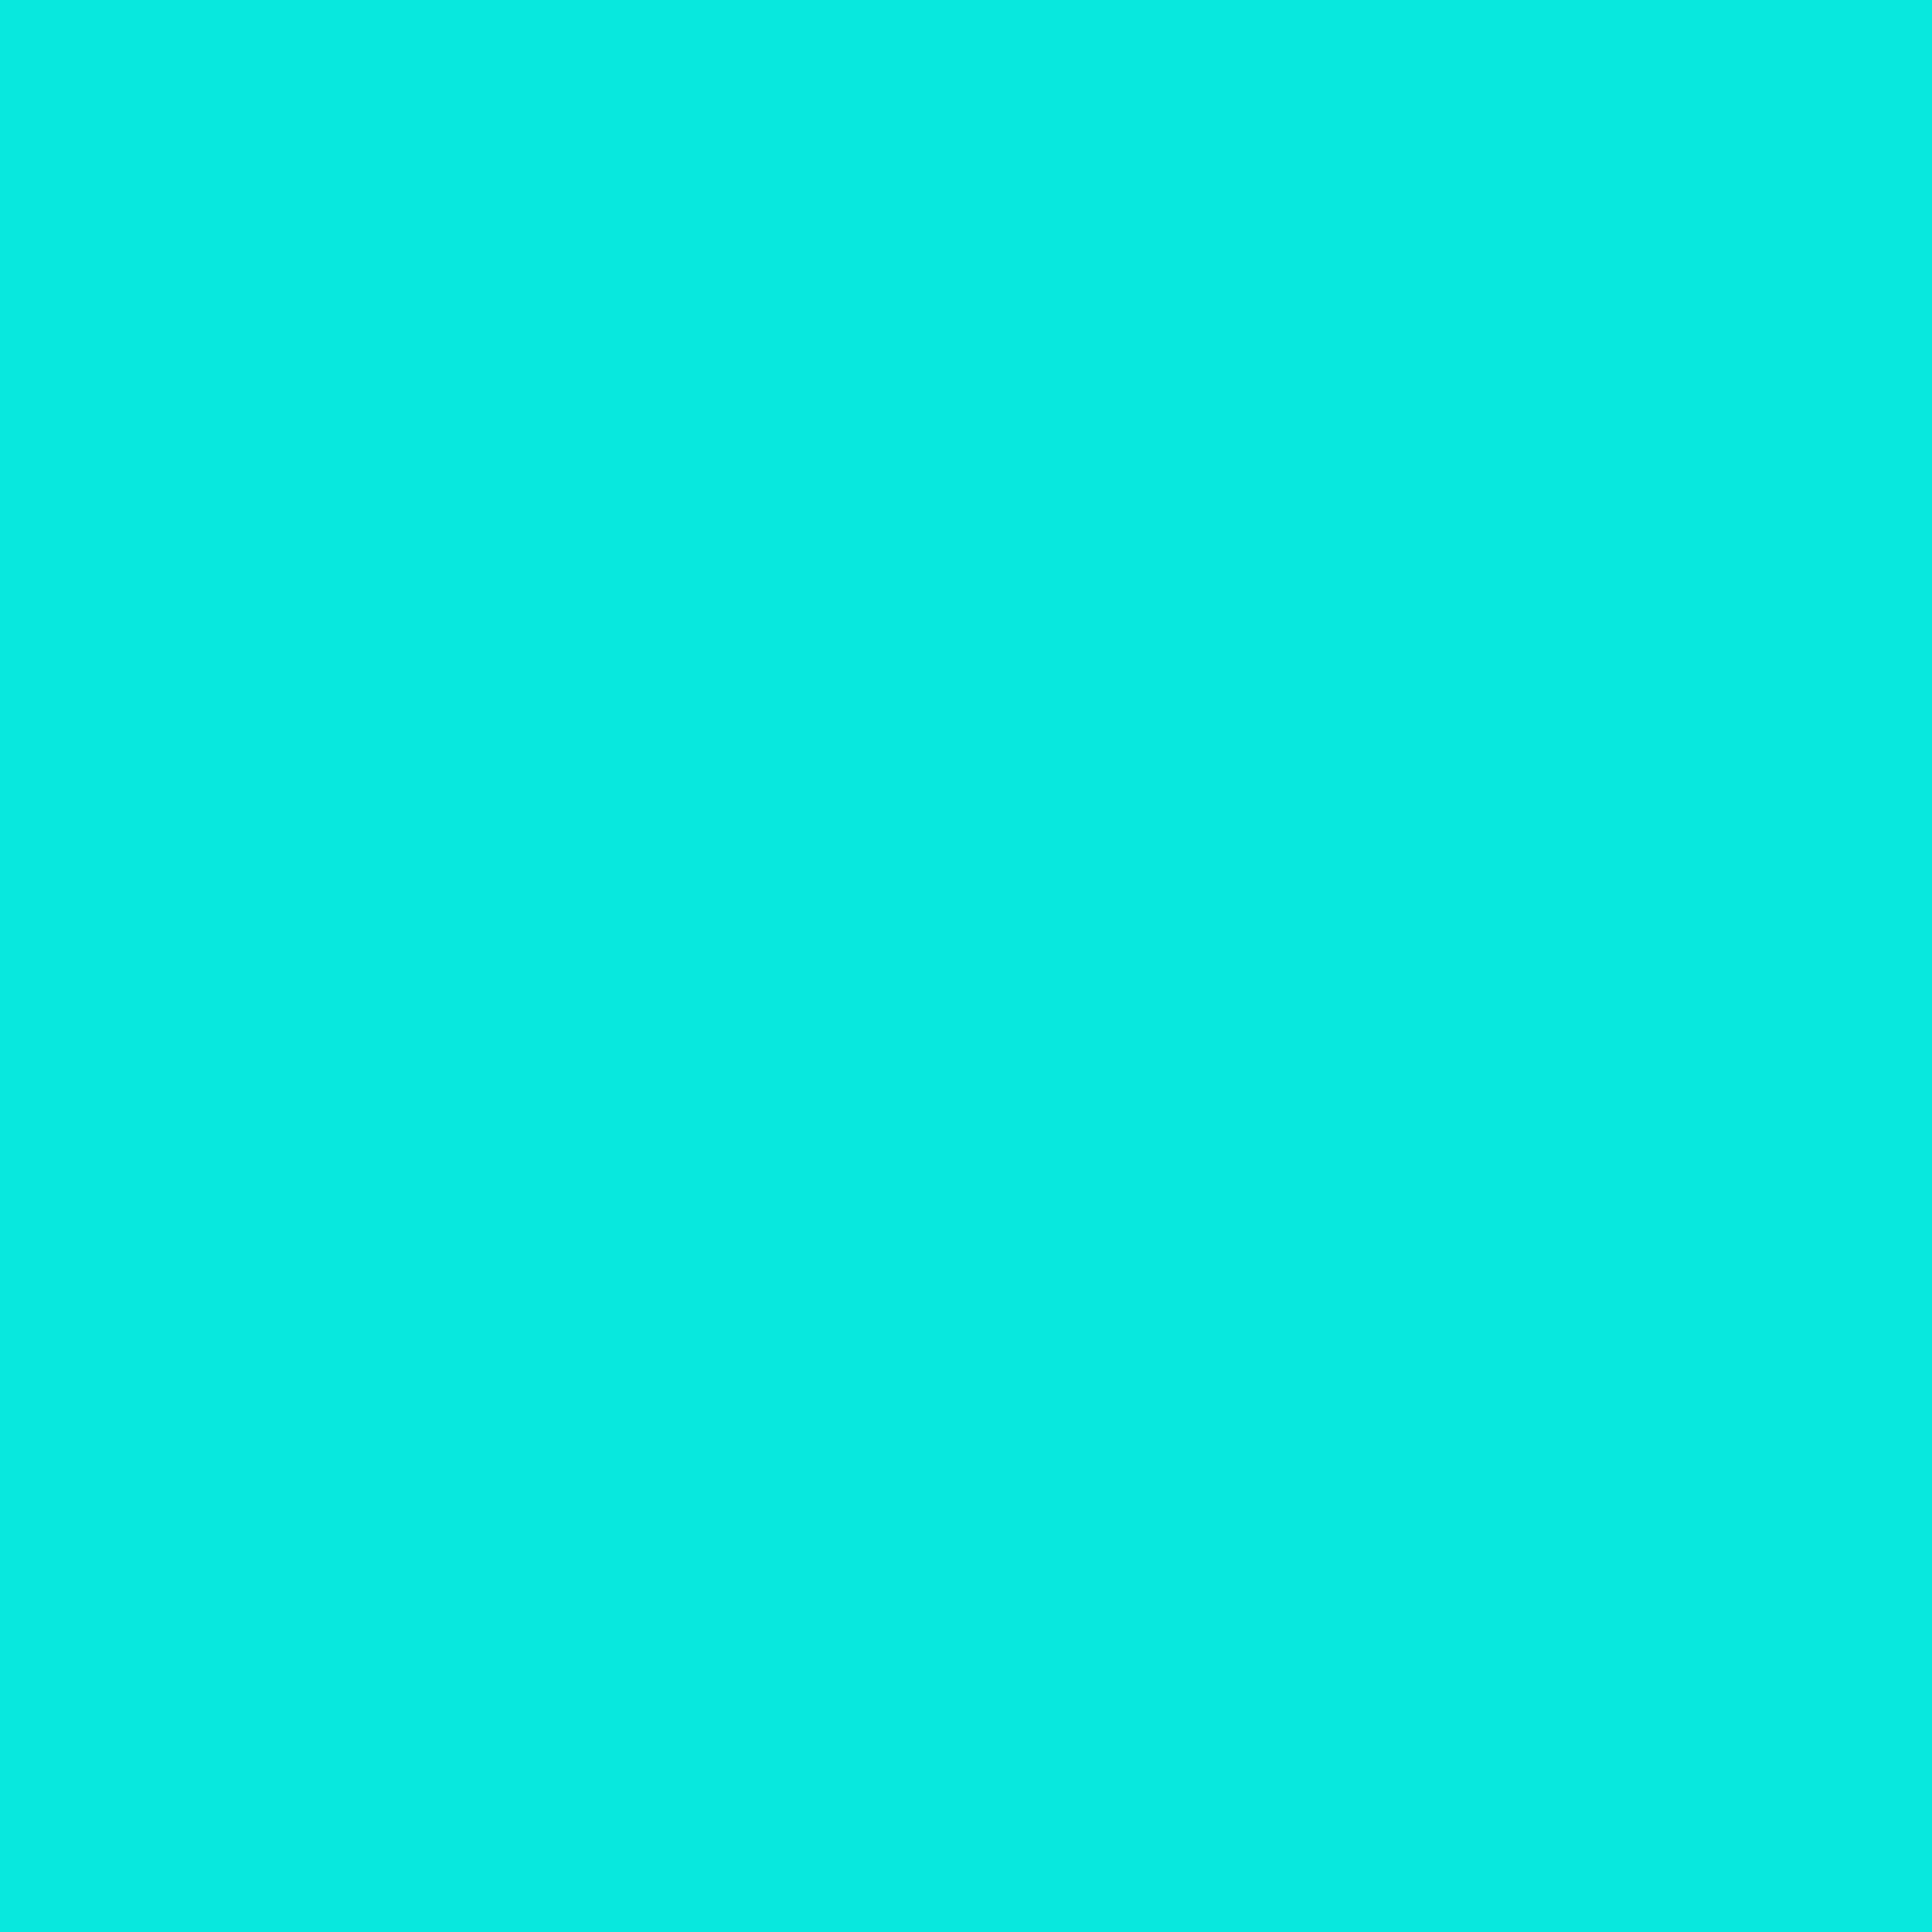 2048x2048 Bright Turquoise Solid Color Background